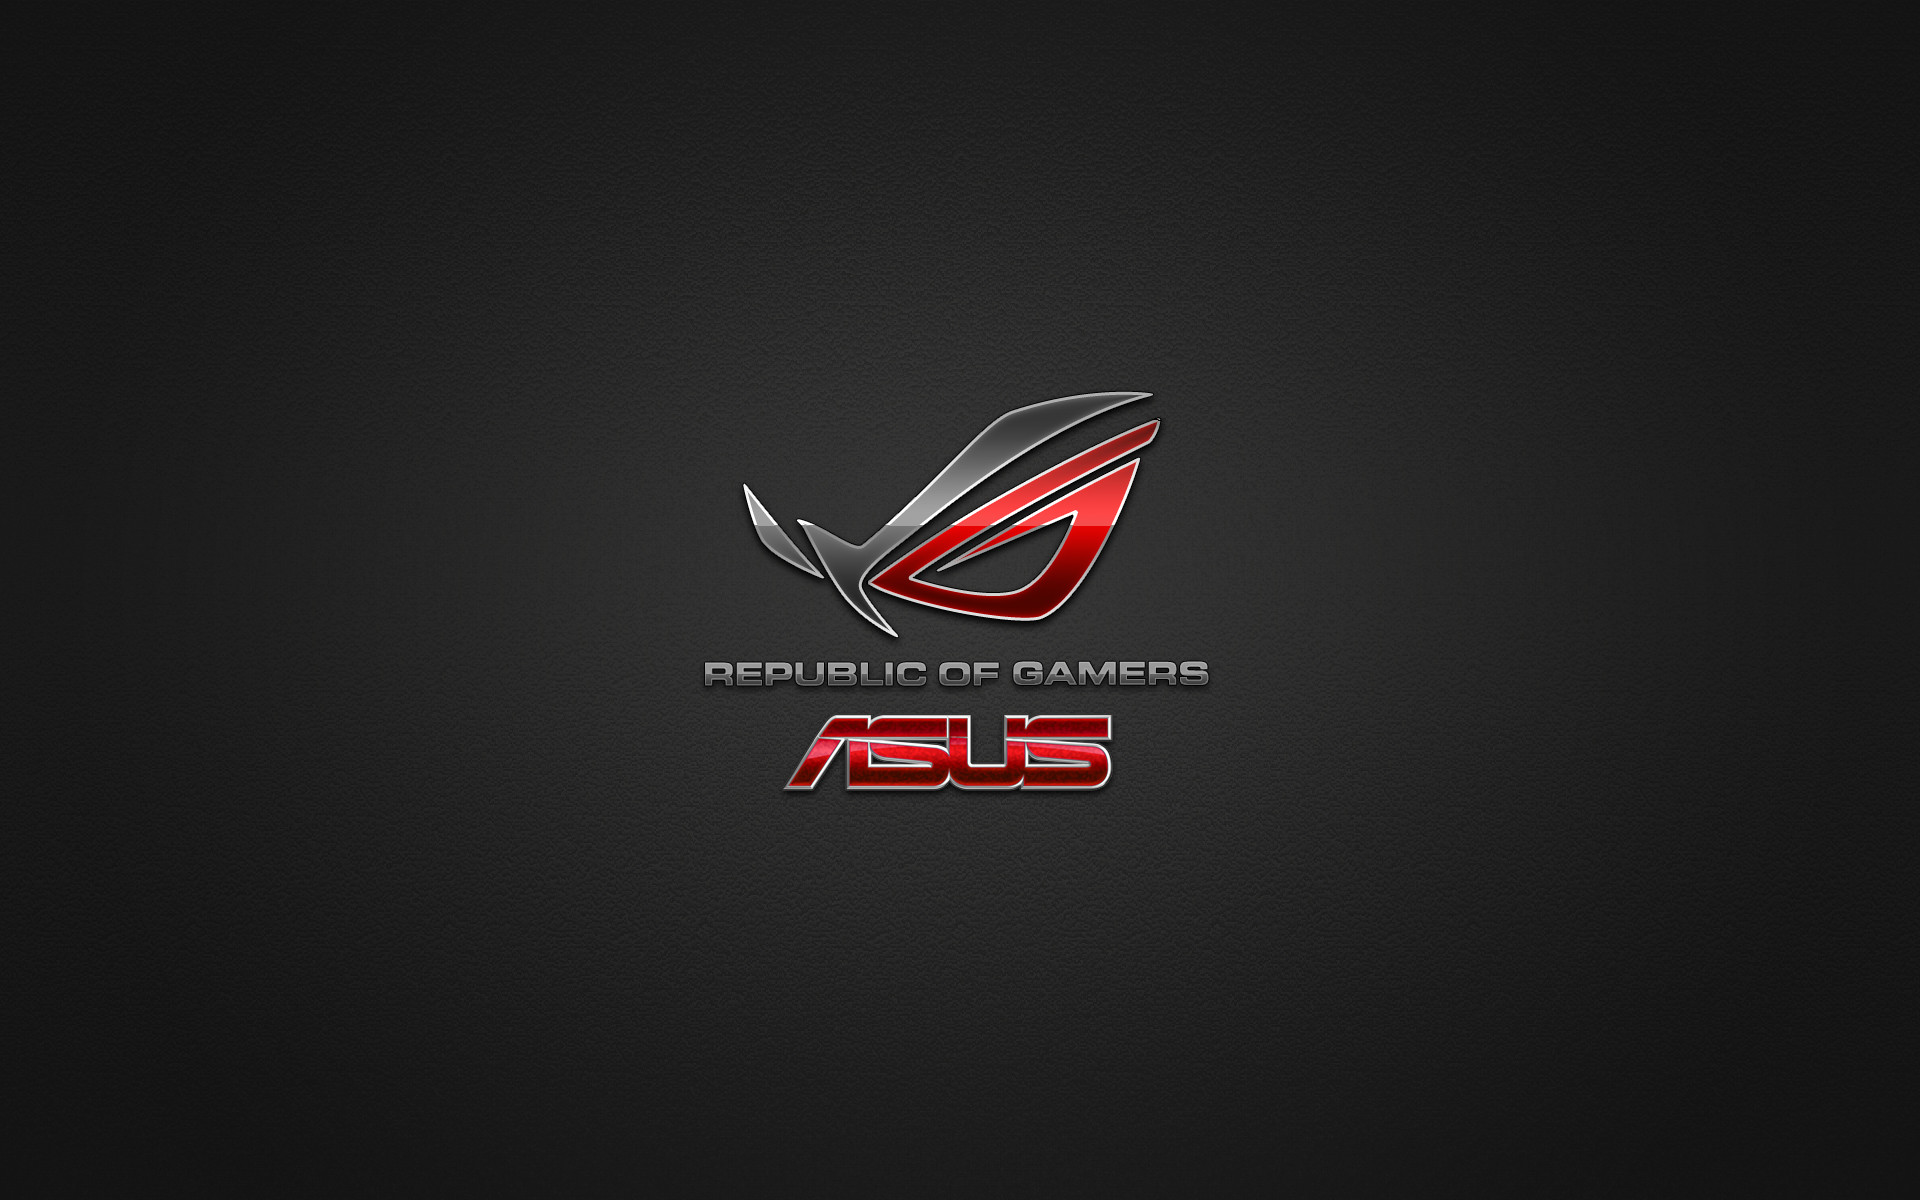 Asus ROG Wallpaper [Archive] – ASUS Republic of Gamers [ROG] | The Choice  of Champions – Overclocking, PC Gaming, PC Modding, Support, Guides, Advice